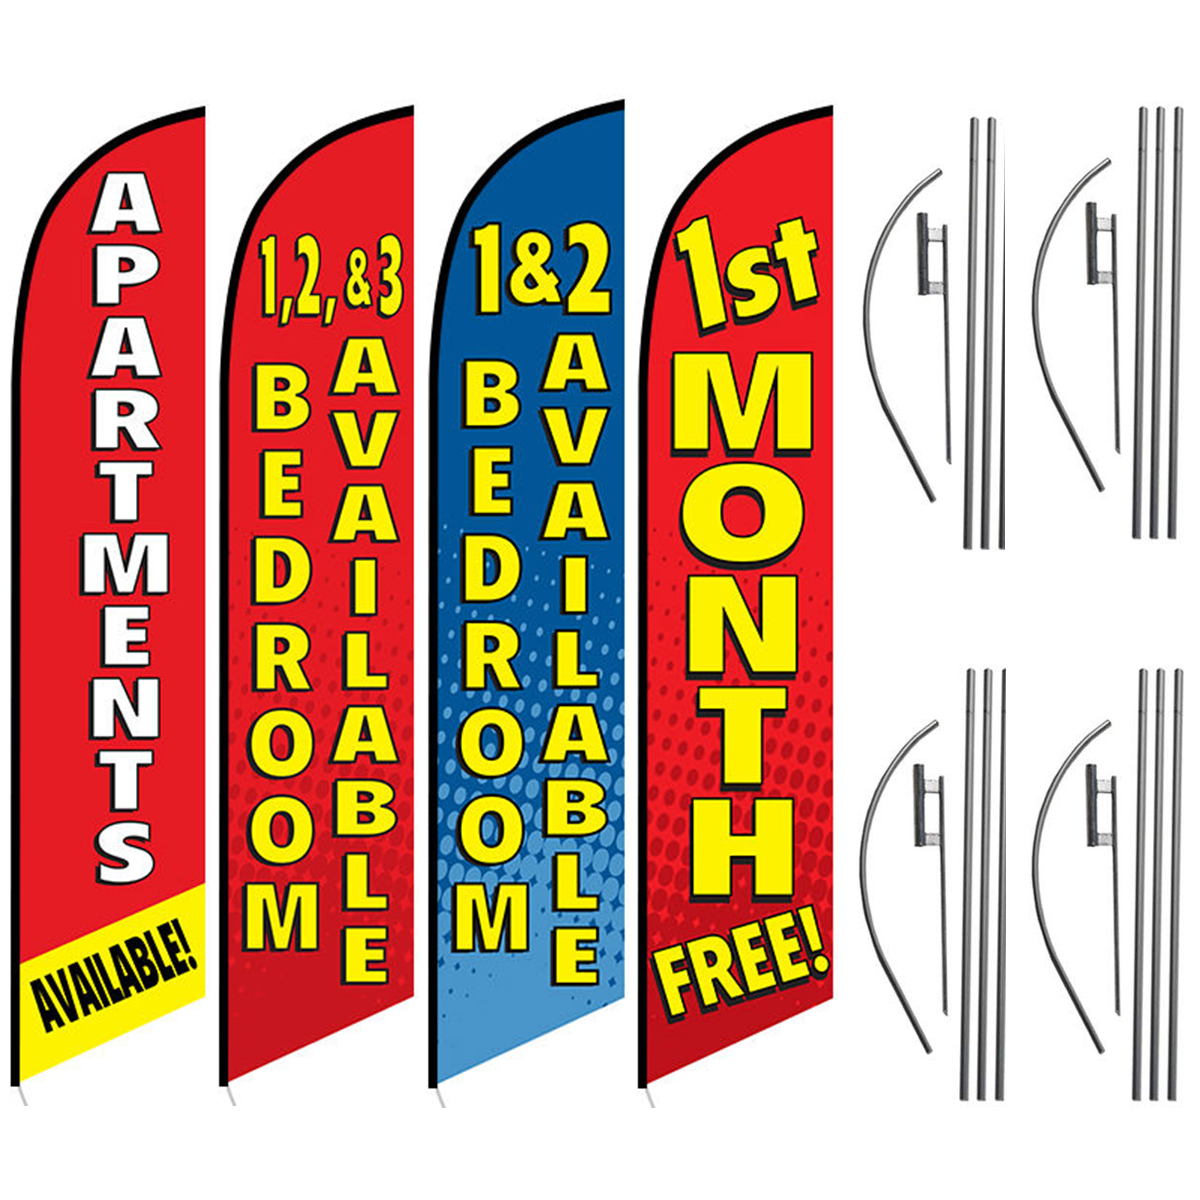 Apartments Phoenix Az First Month Free: Outdoor Advertising